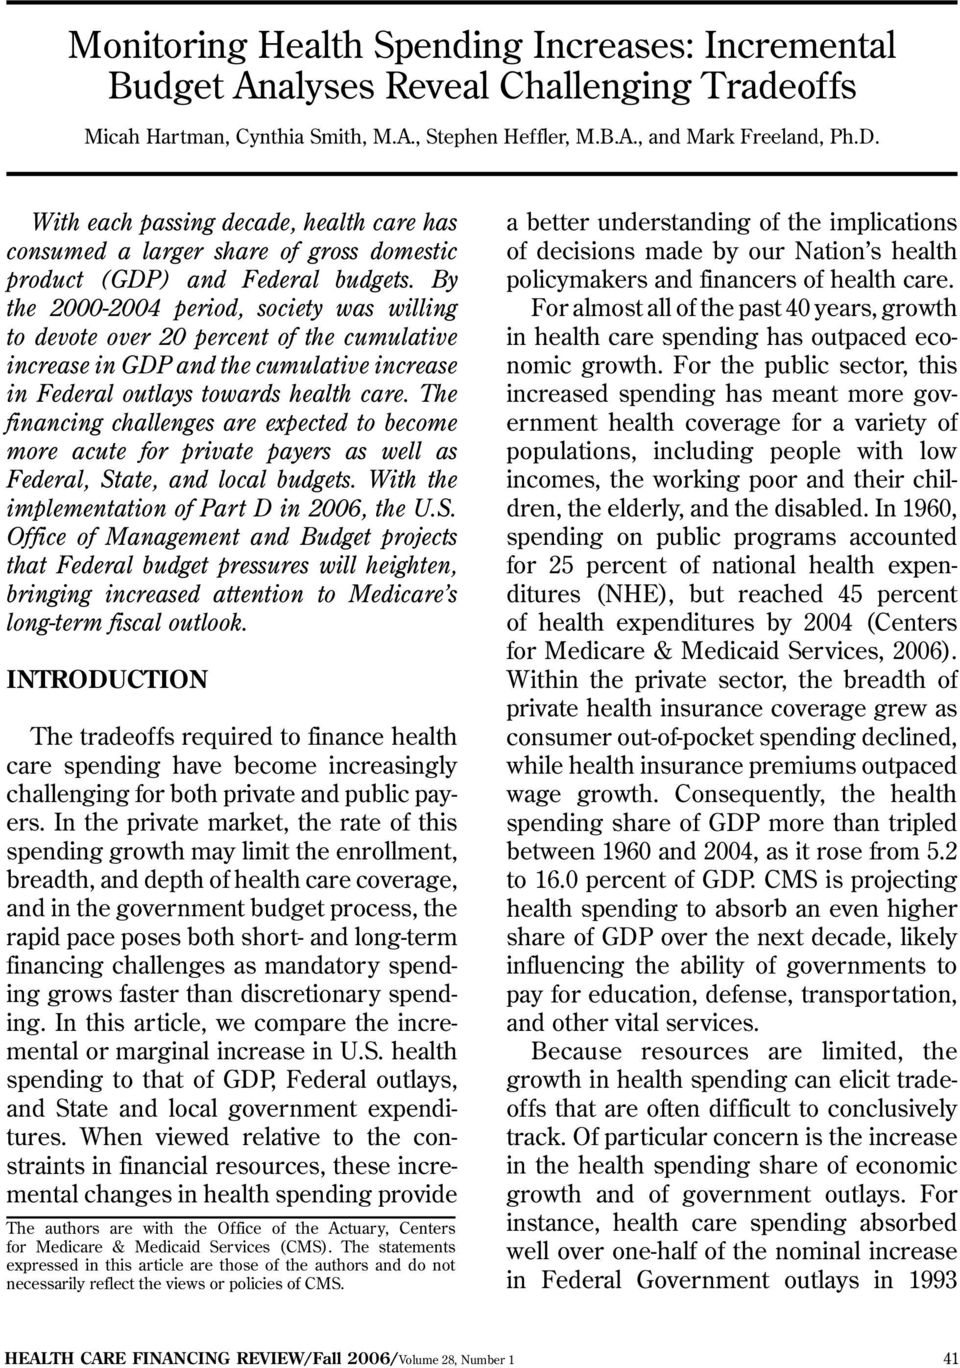 By the 2000-2004 period, society was willing to devote over 20 percent of the cumulative increase in GDP and the cumulative increase in Federal outlays towards health care.